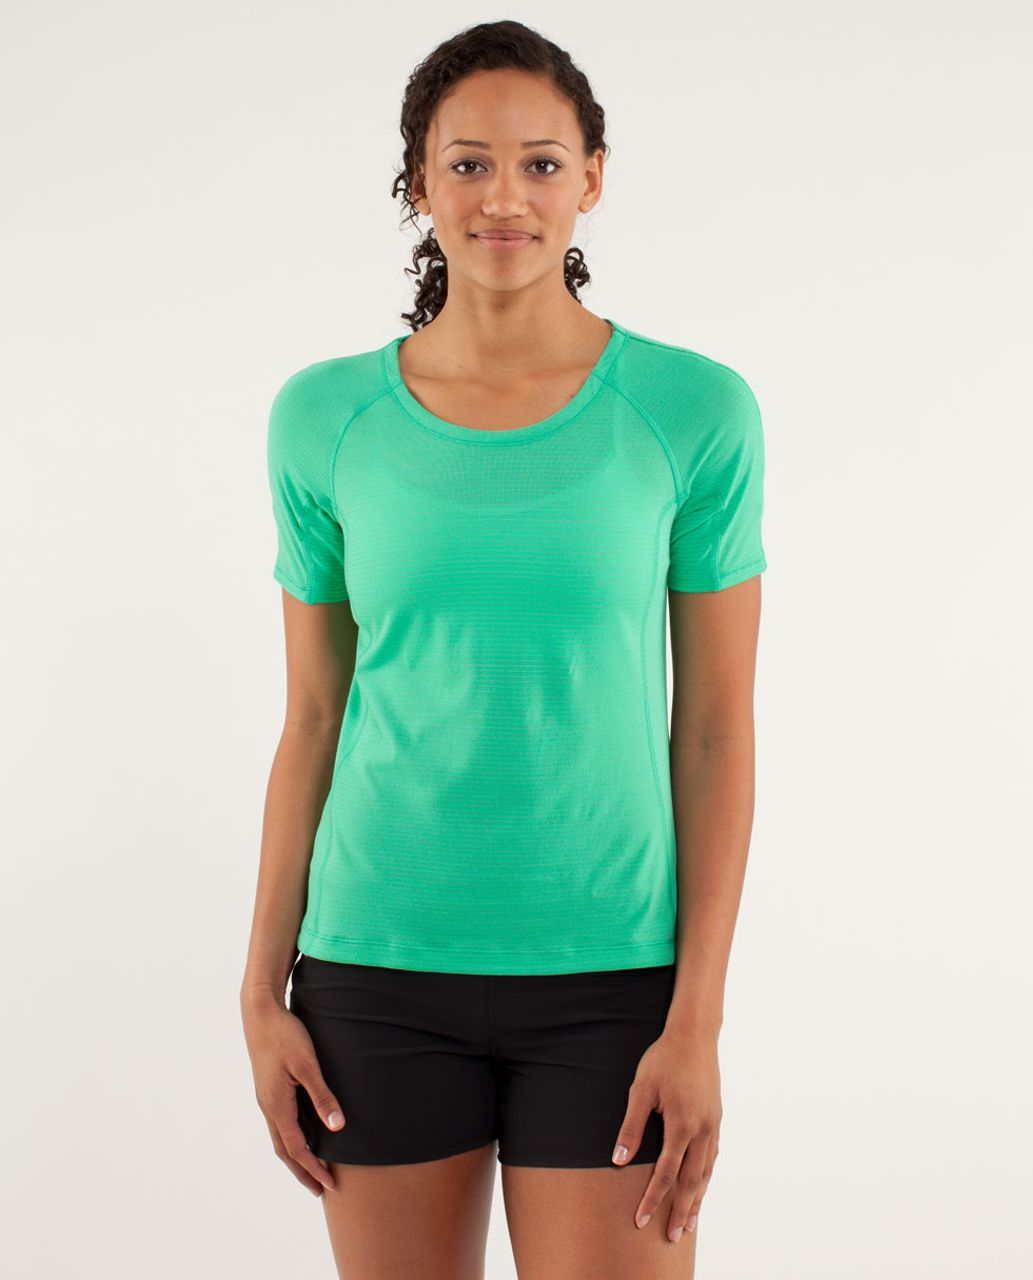 Lululemon Run:  Silver Lining Short Sleeve - Very Green / Fresh Teal